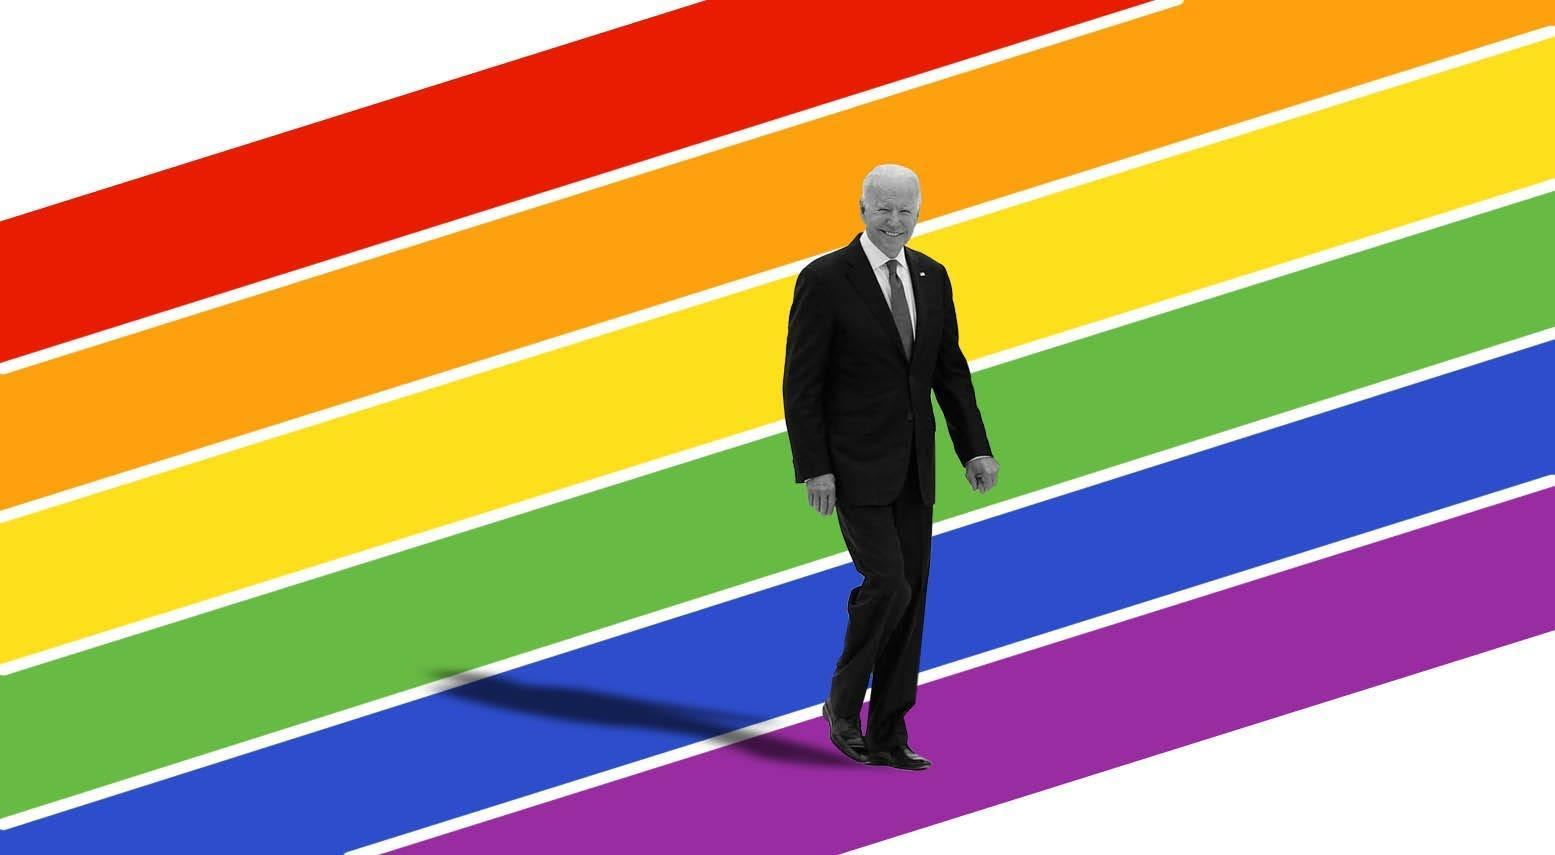 How Biden became the most LGBTQ-friendly president